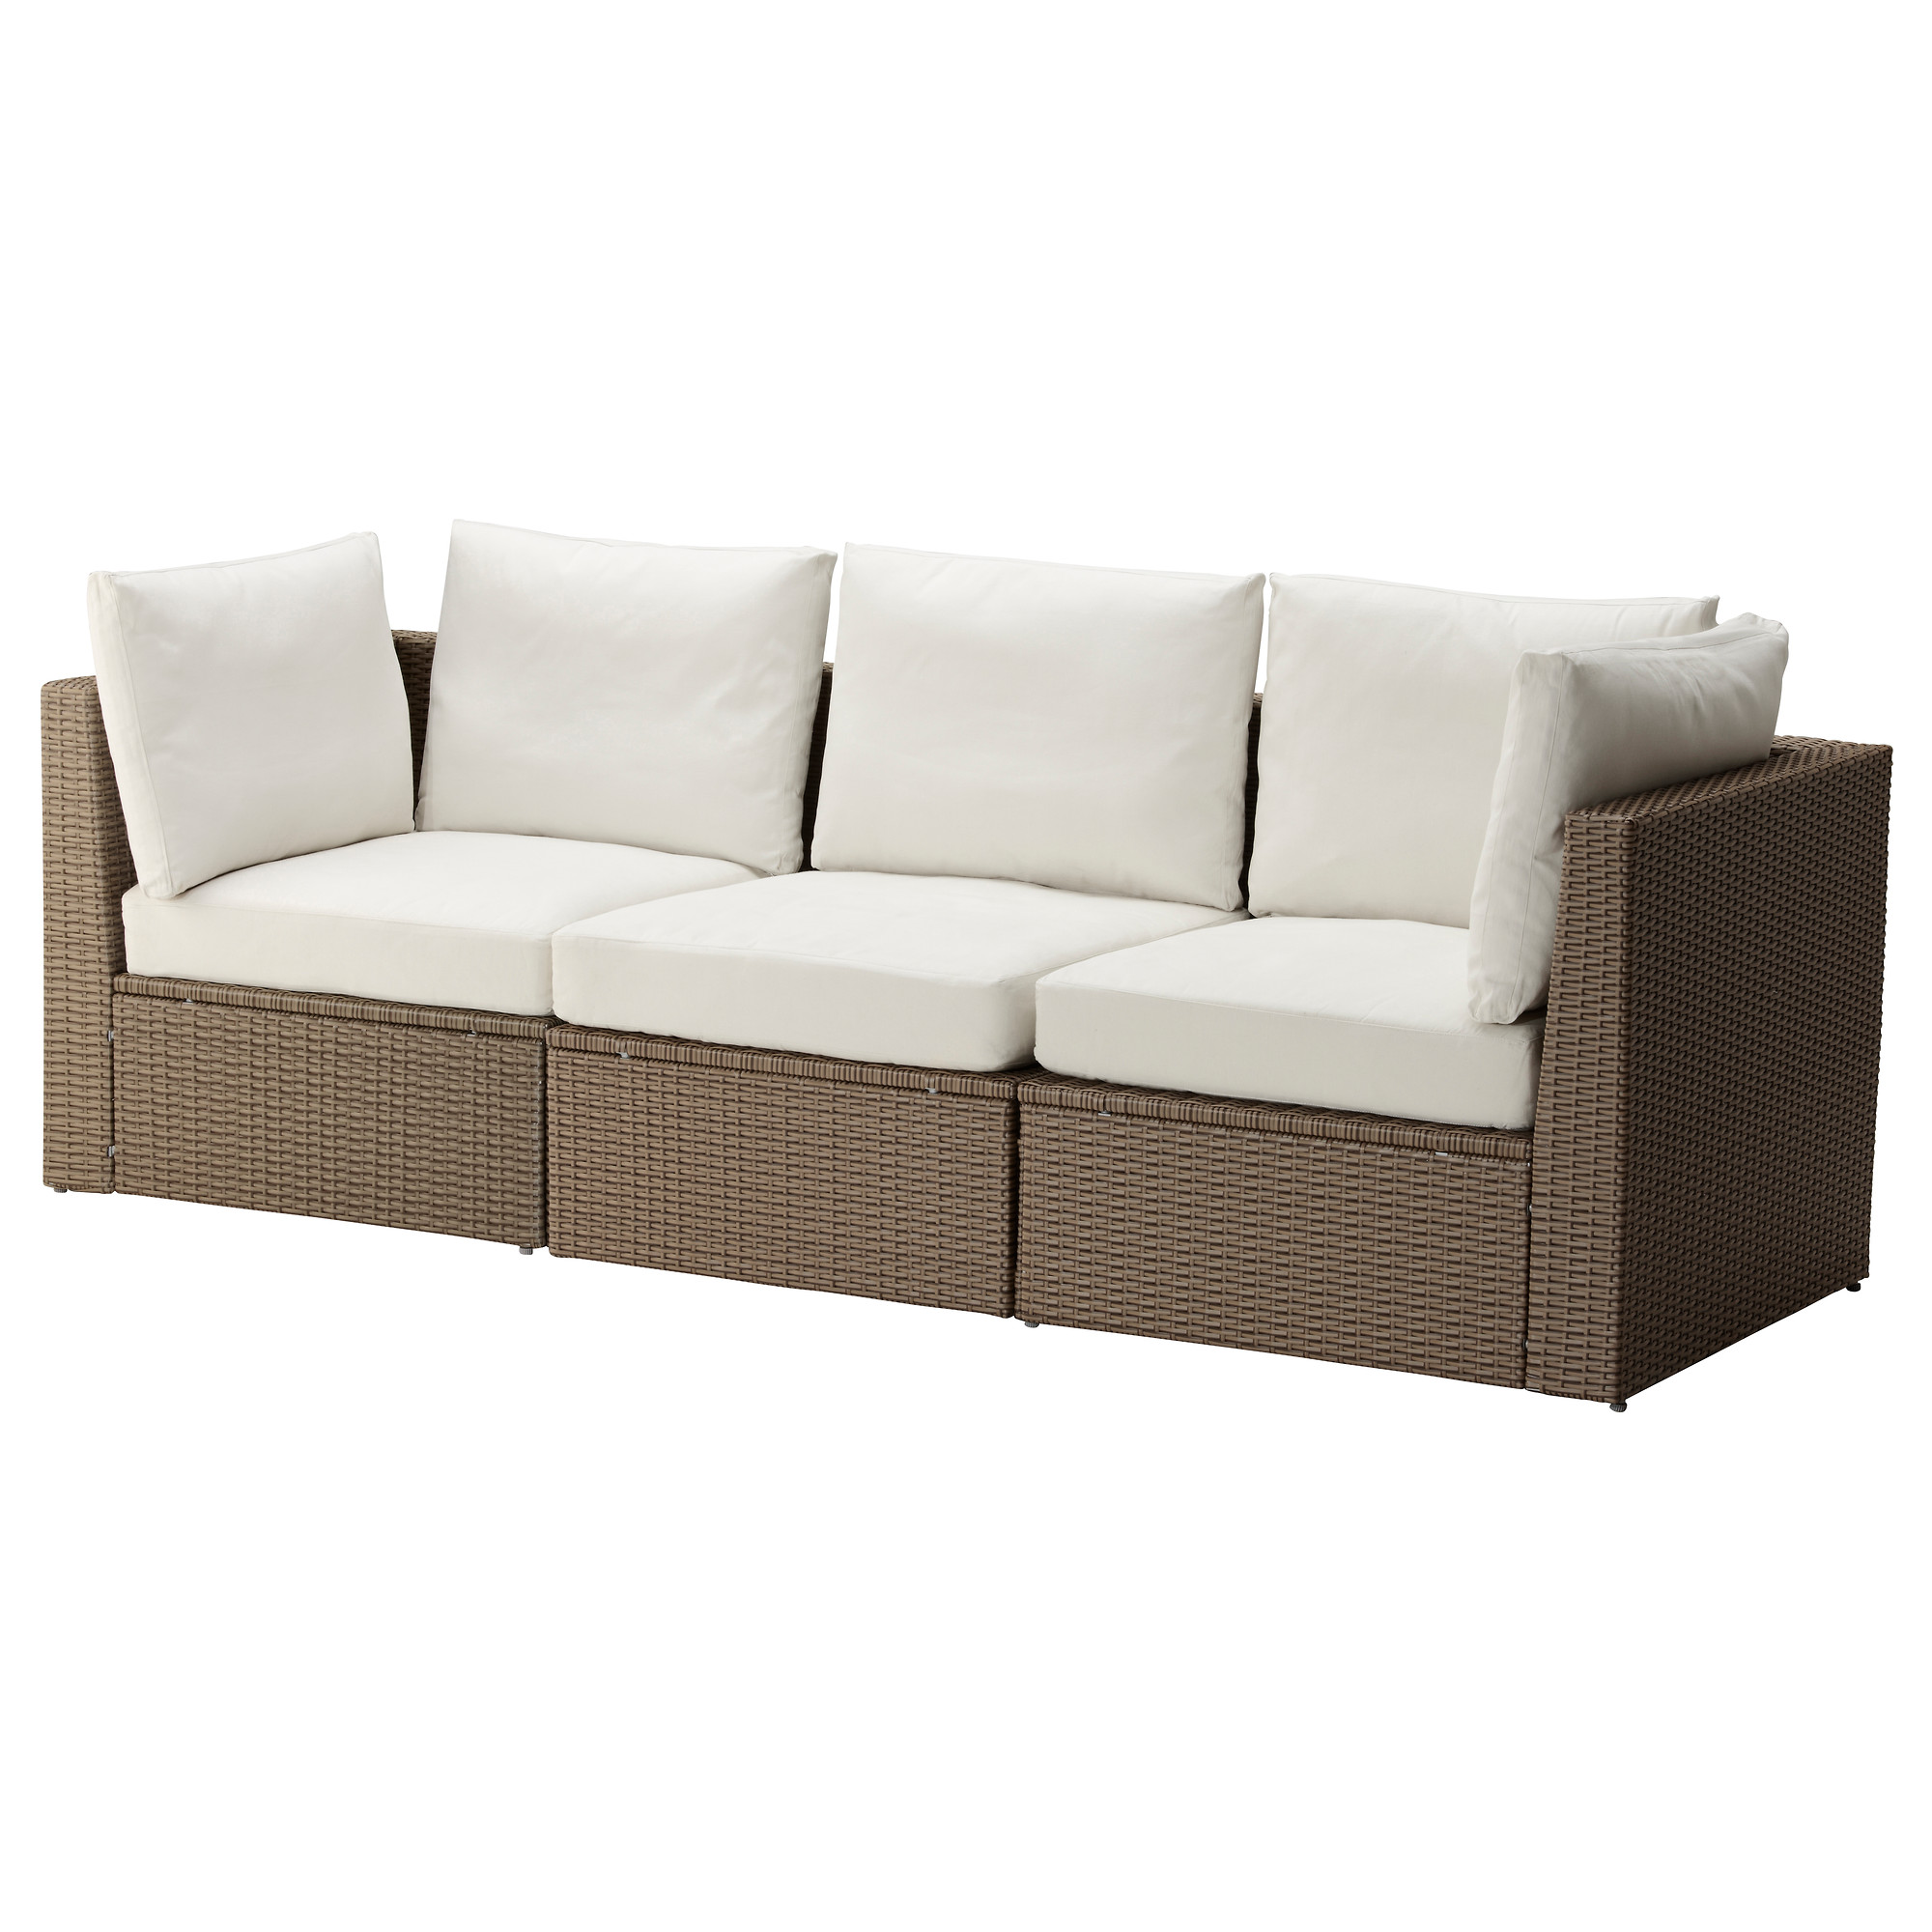 Use sectional sofa as a Patio couch A great extension of your